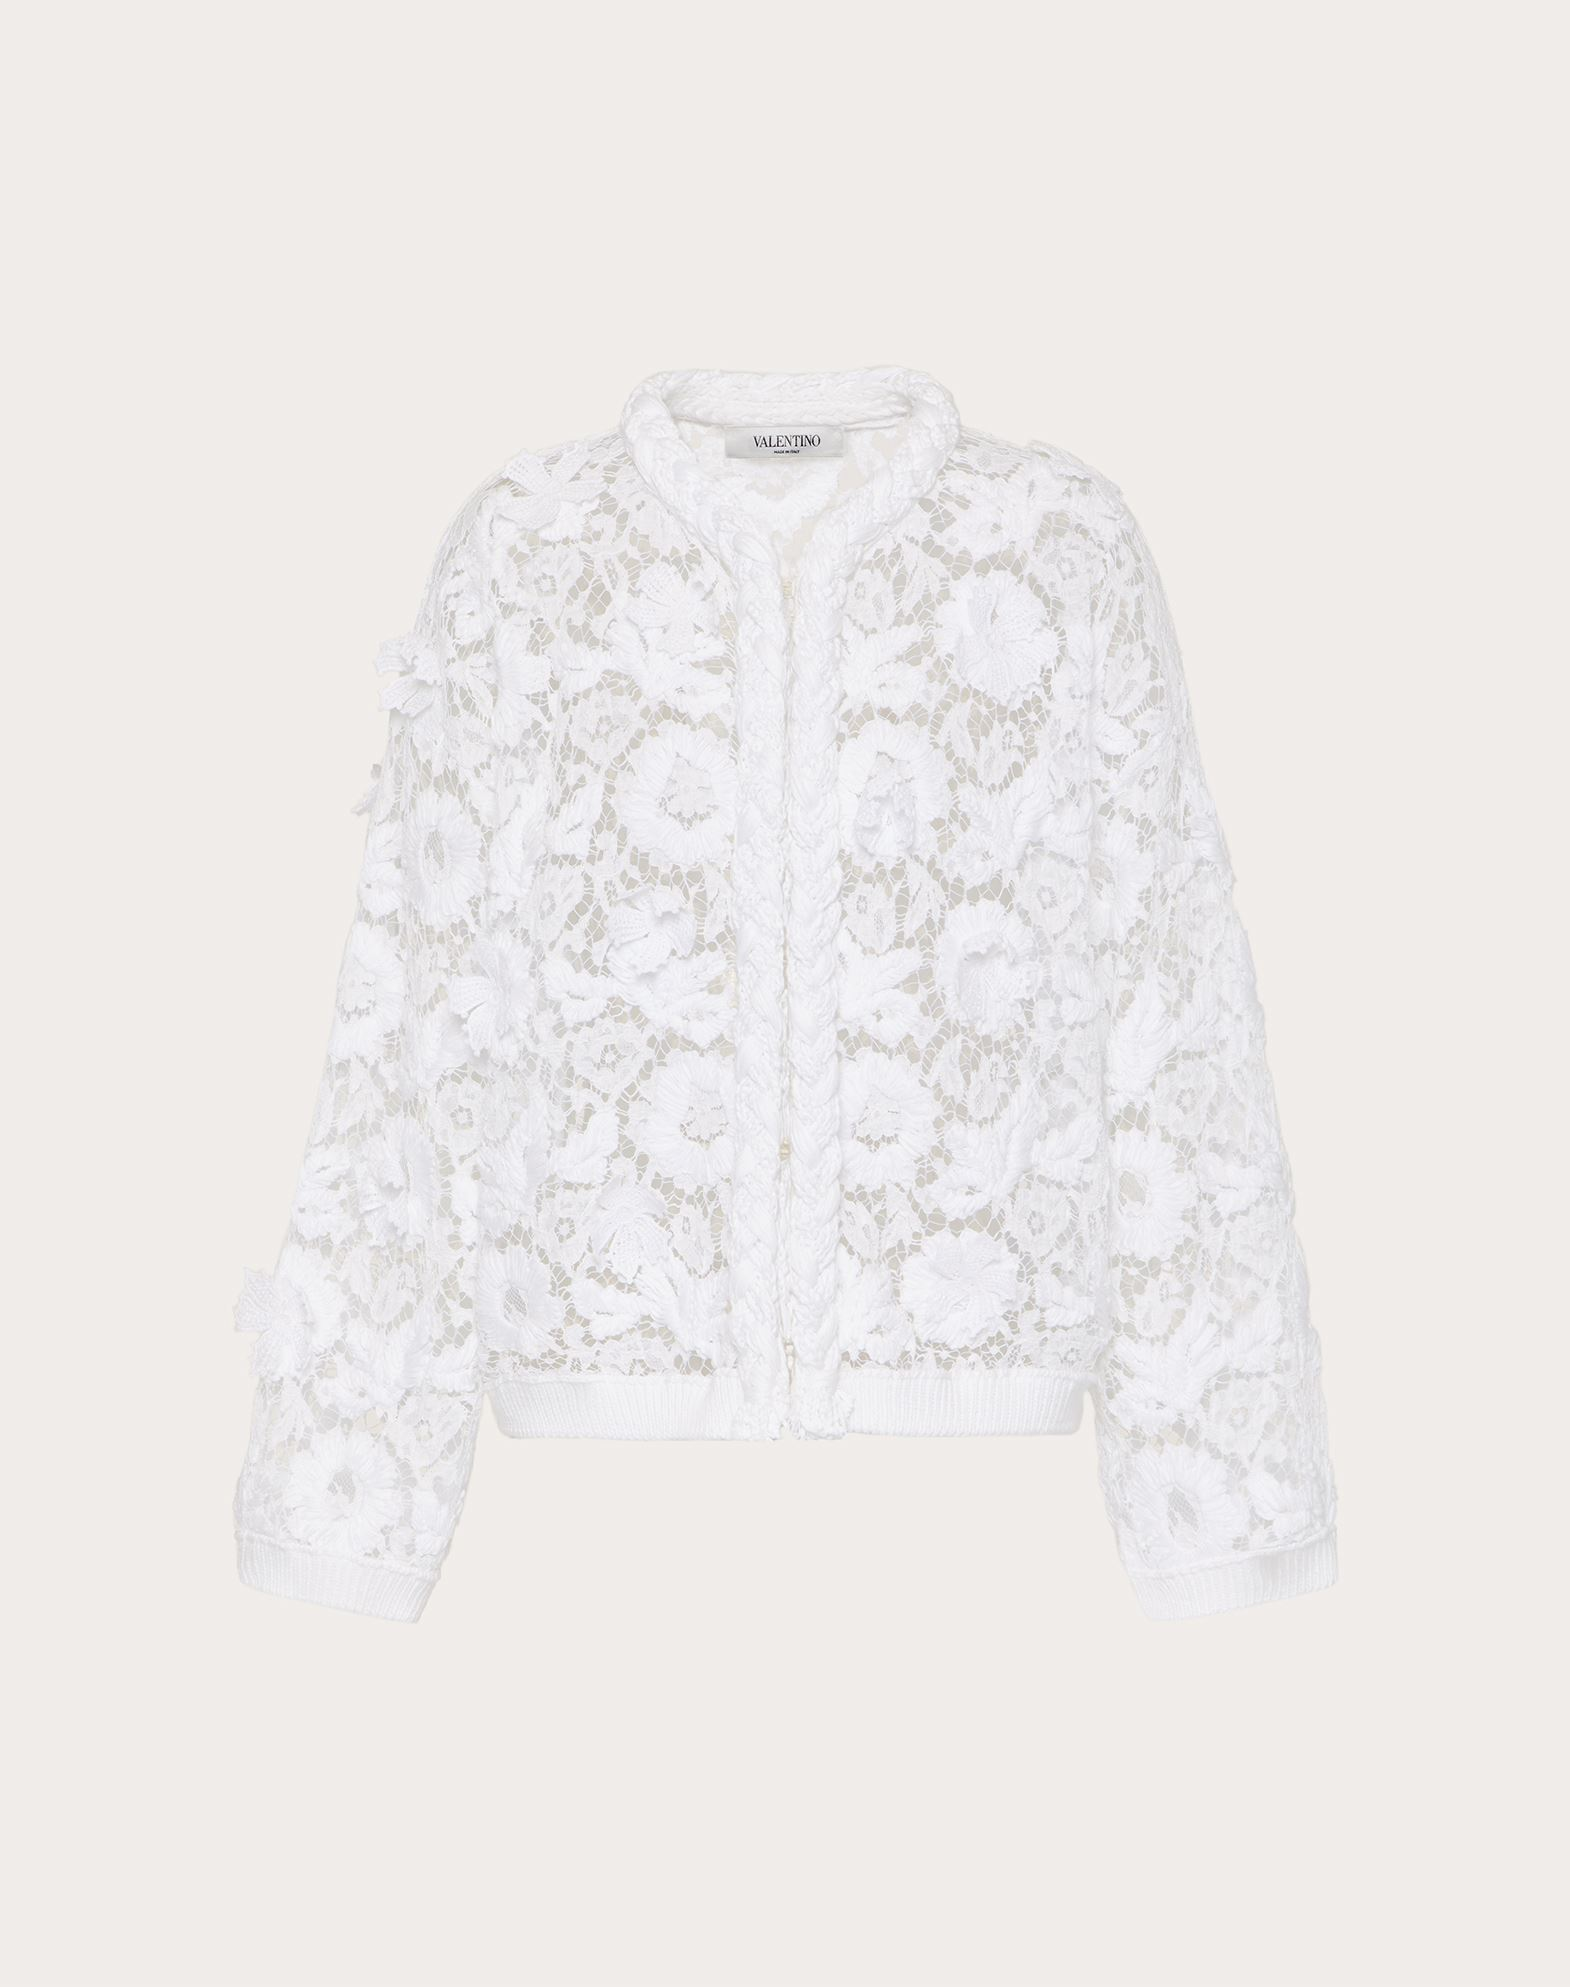 Valentino VALENTINO CARDIGAN IN COTTON AND EMBROIDERED LACE